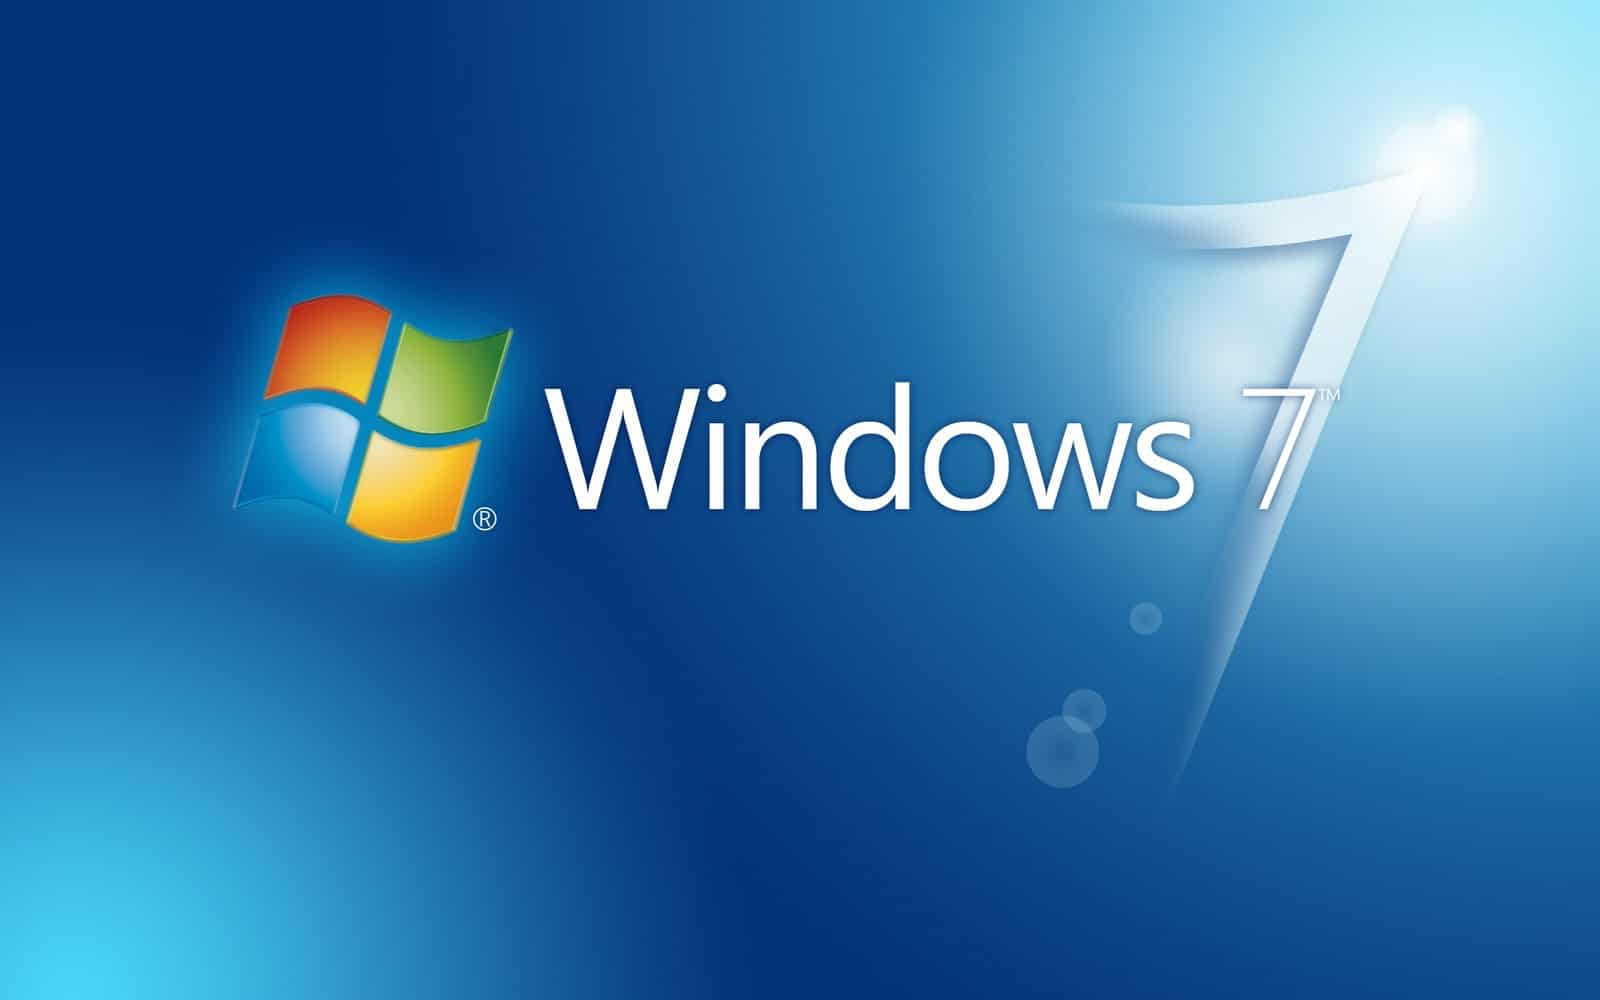 Microsoft stops supporting Windows 7 in 3 years.